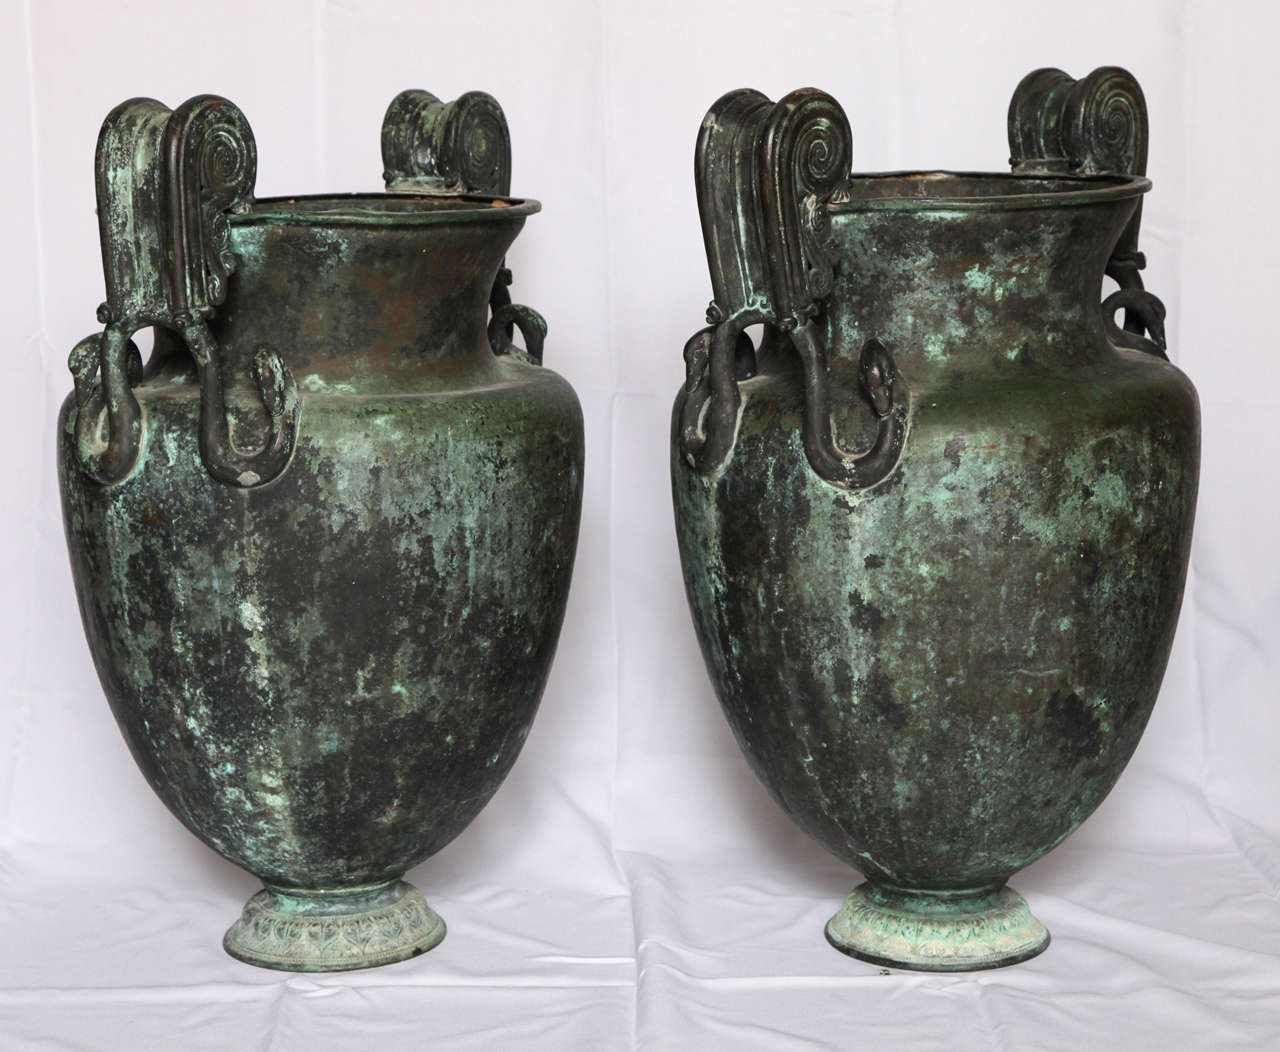 Grand Tour Pair of Large Neoclassical Urns For Sale